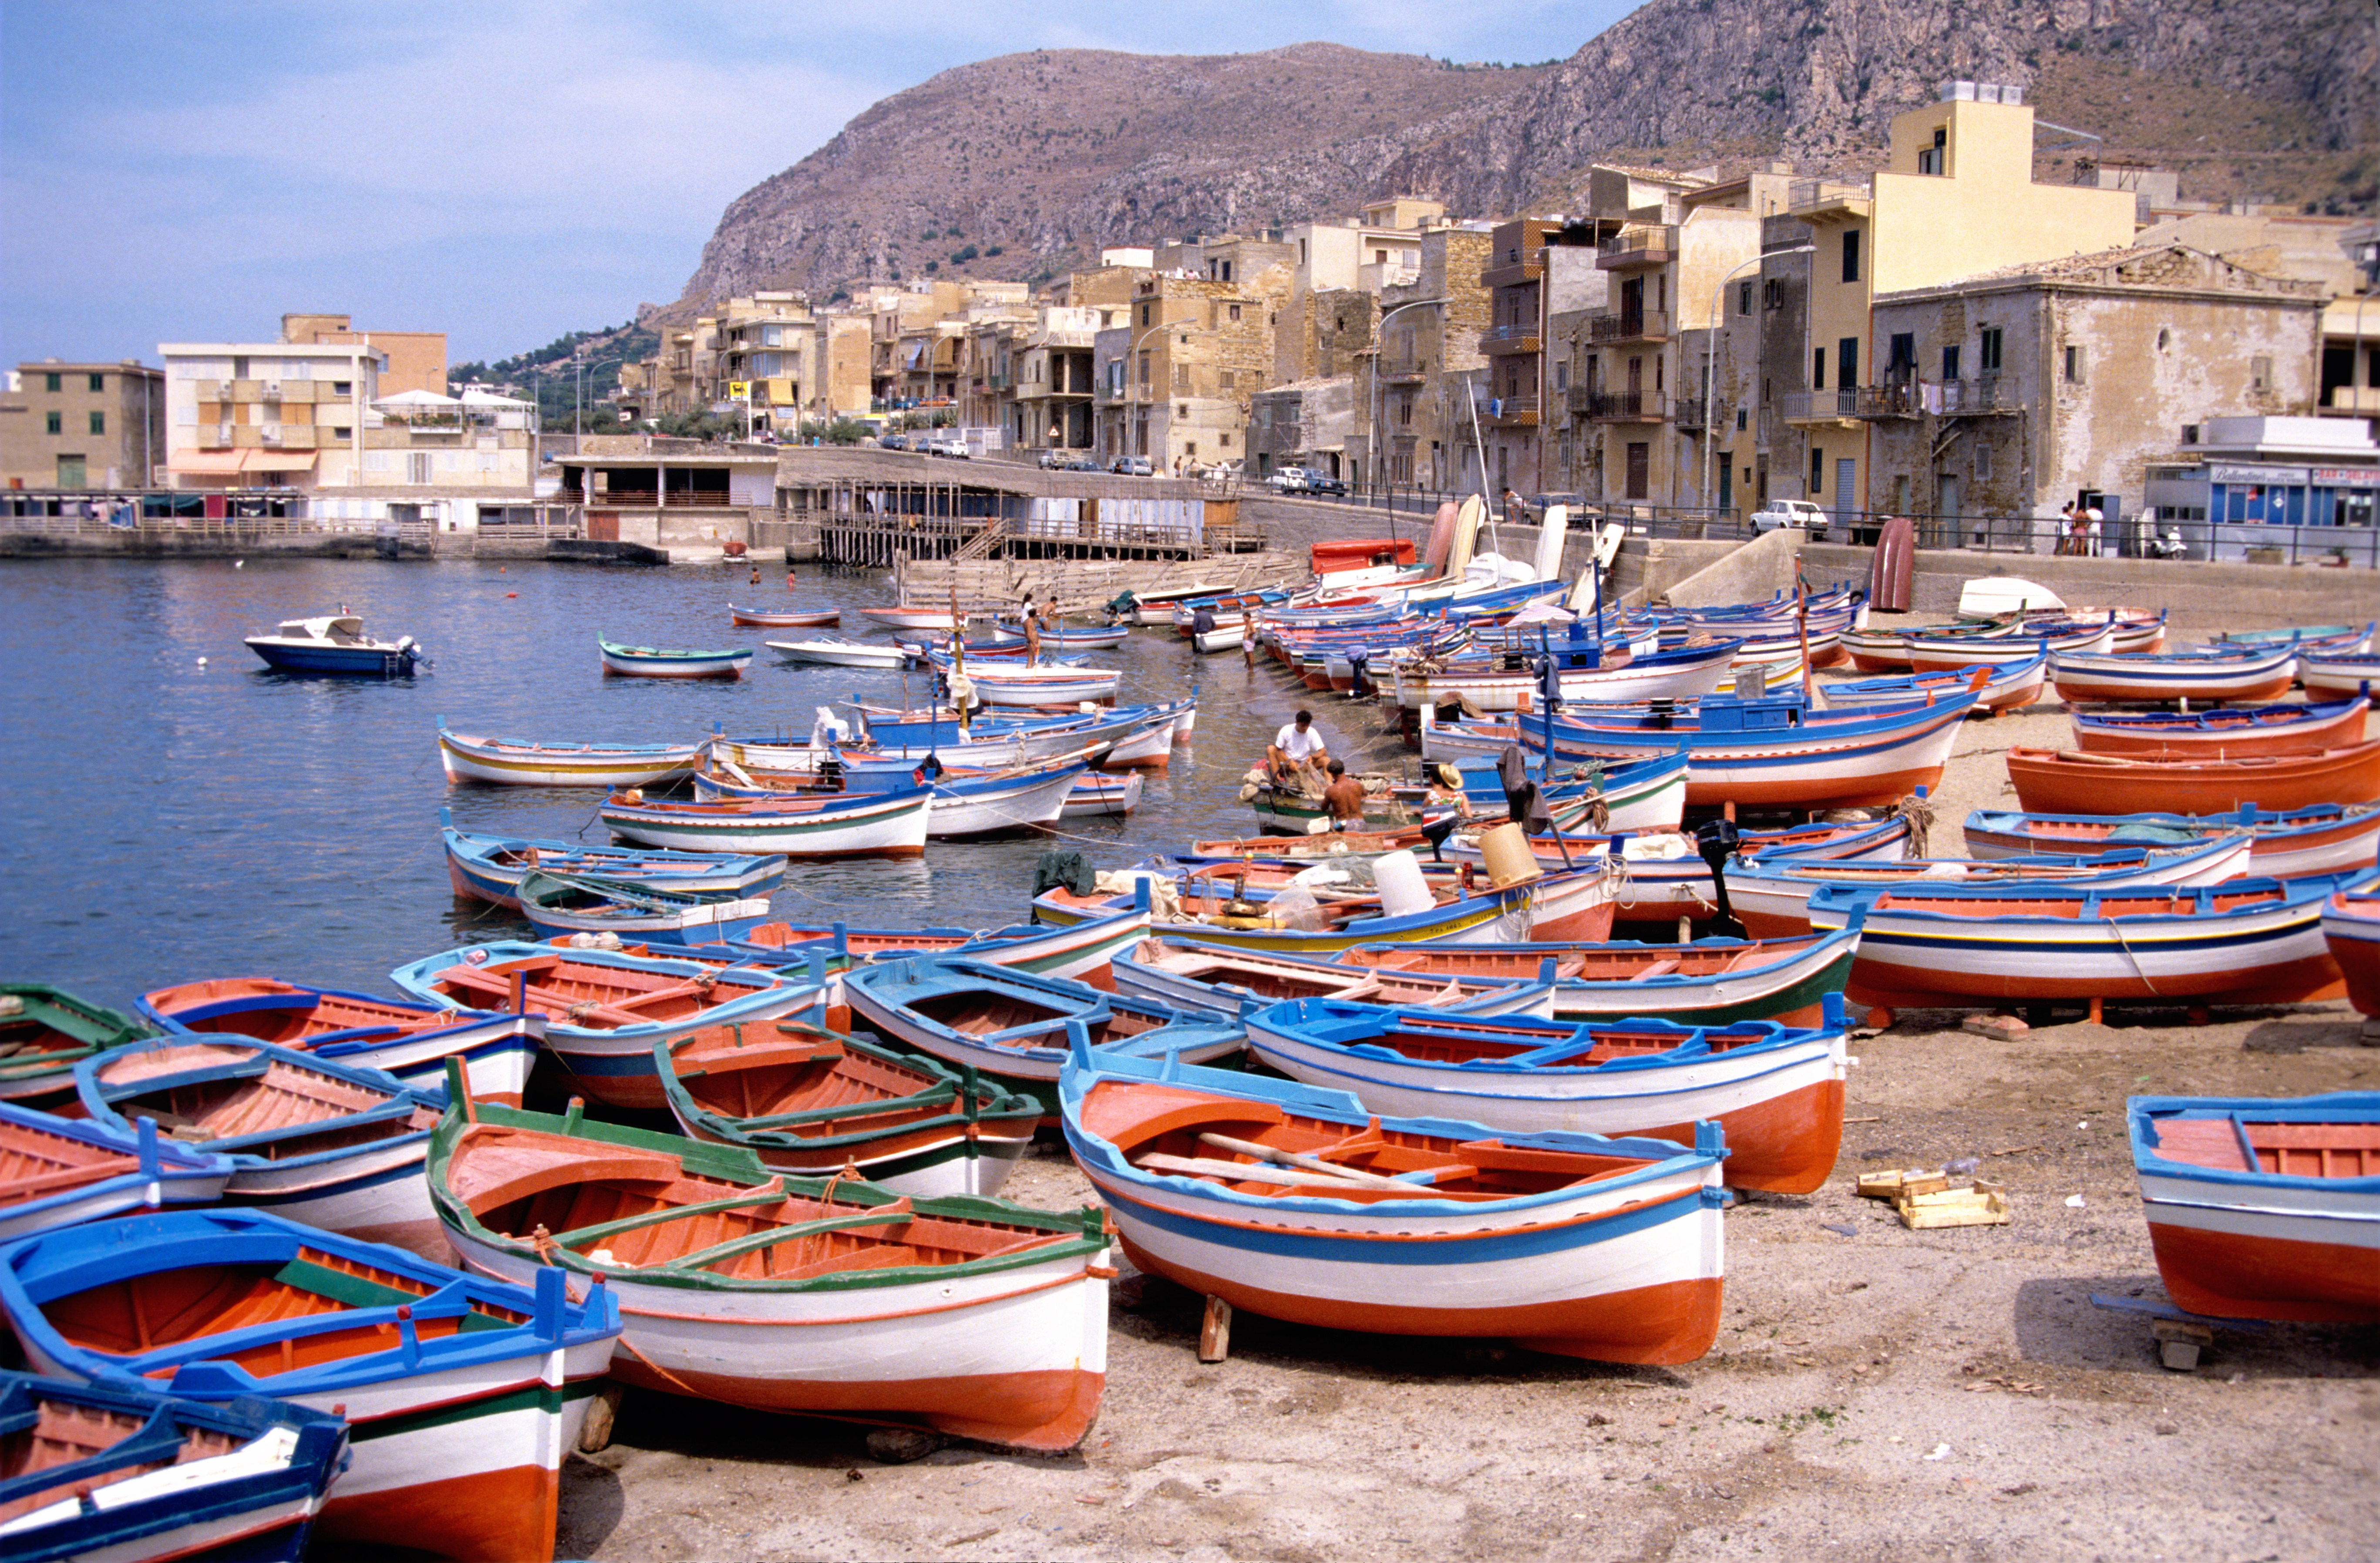 Boats in sicily photo